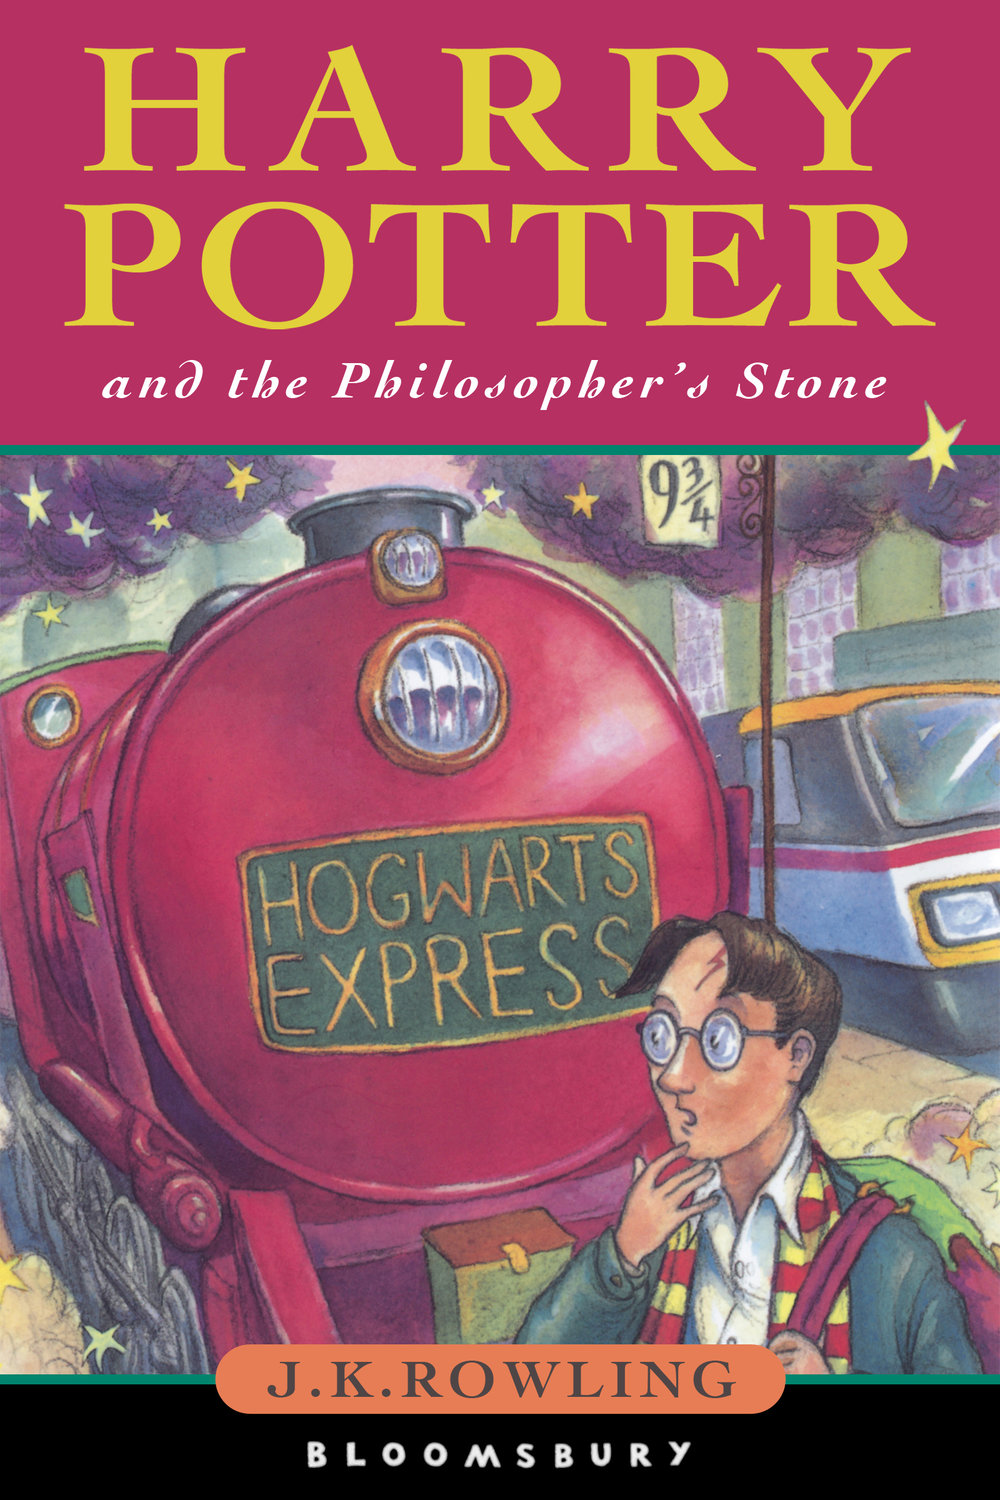 Harry-Potter-And-The-Philosophers-Stone_novel.jpg